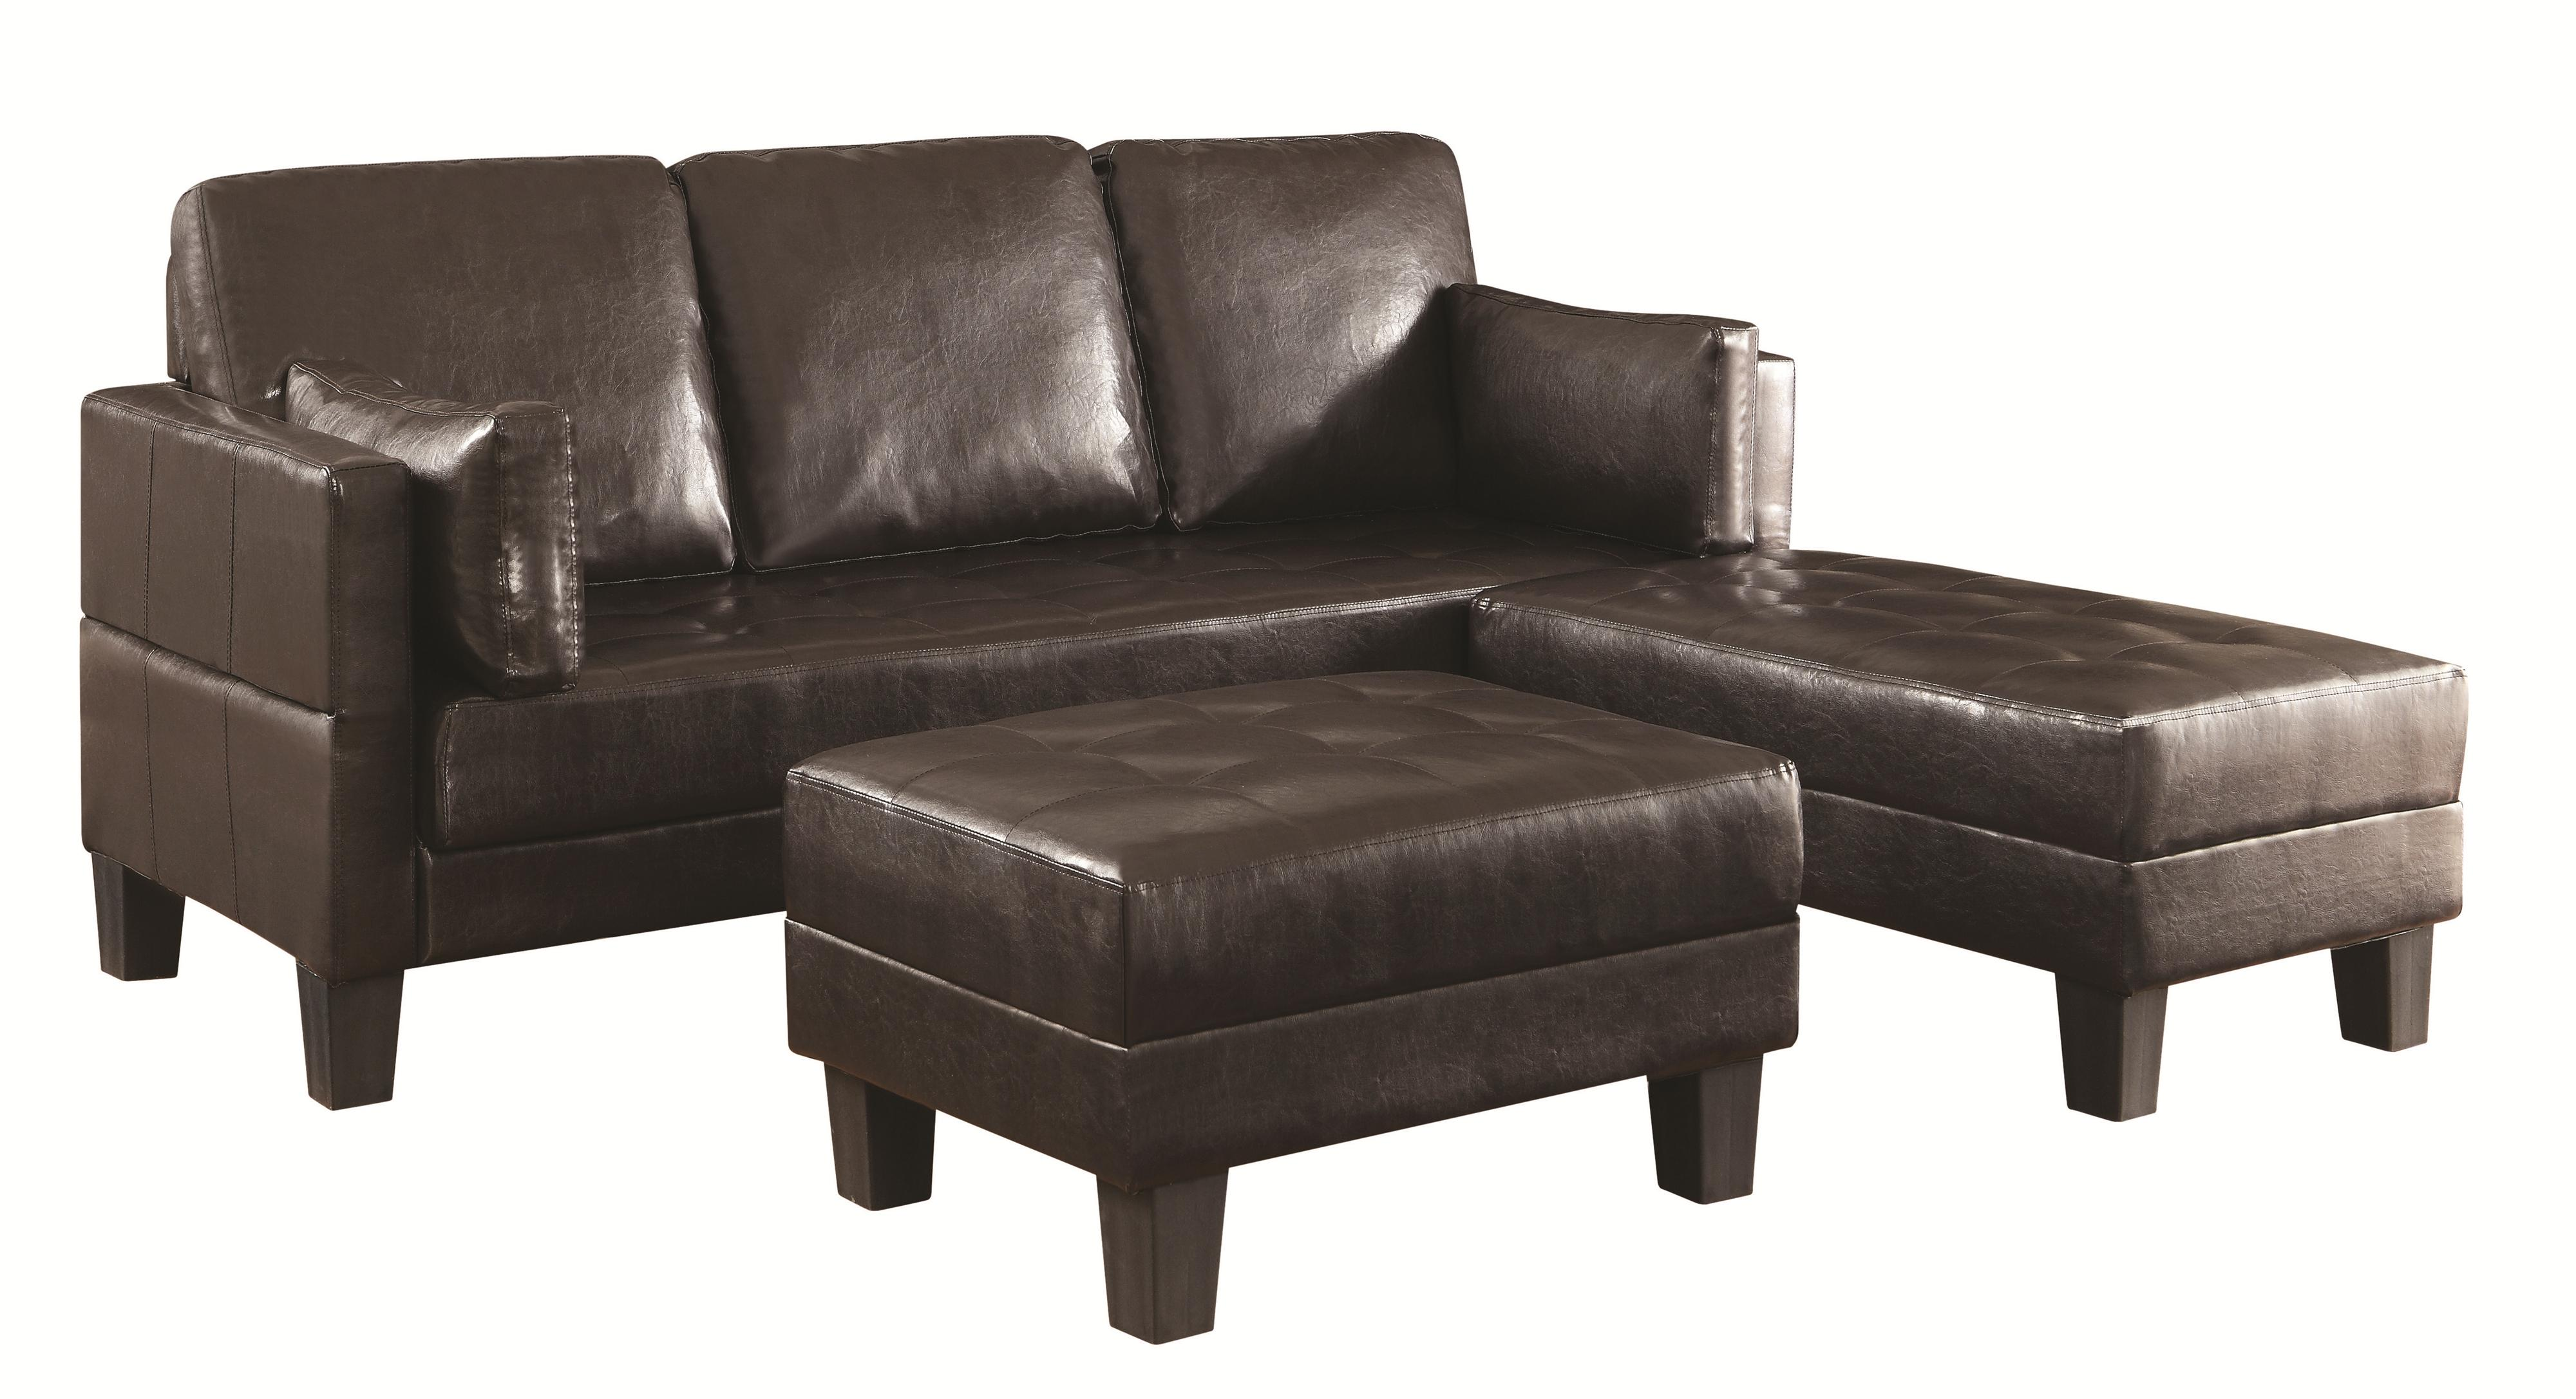 Coaster Ellesmere Sofa Bed Group - Item Number: 300204